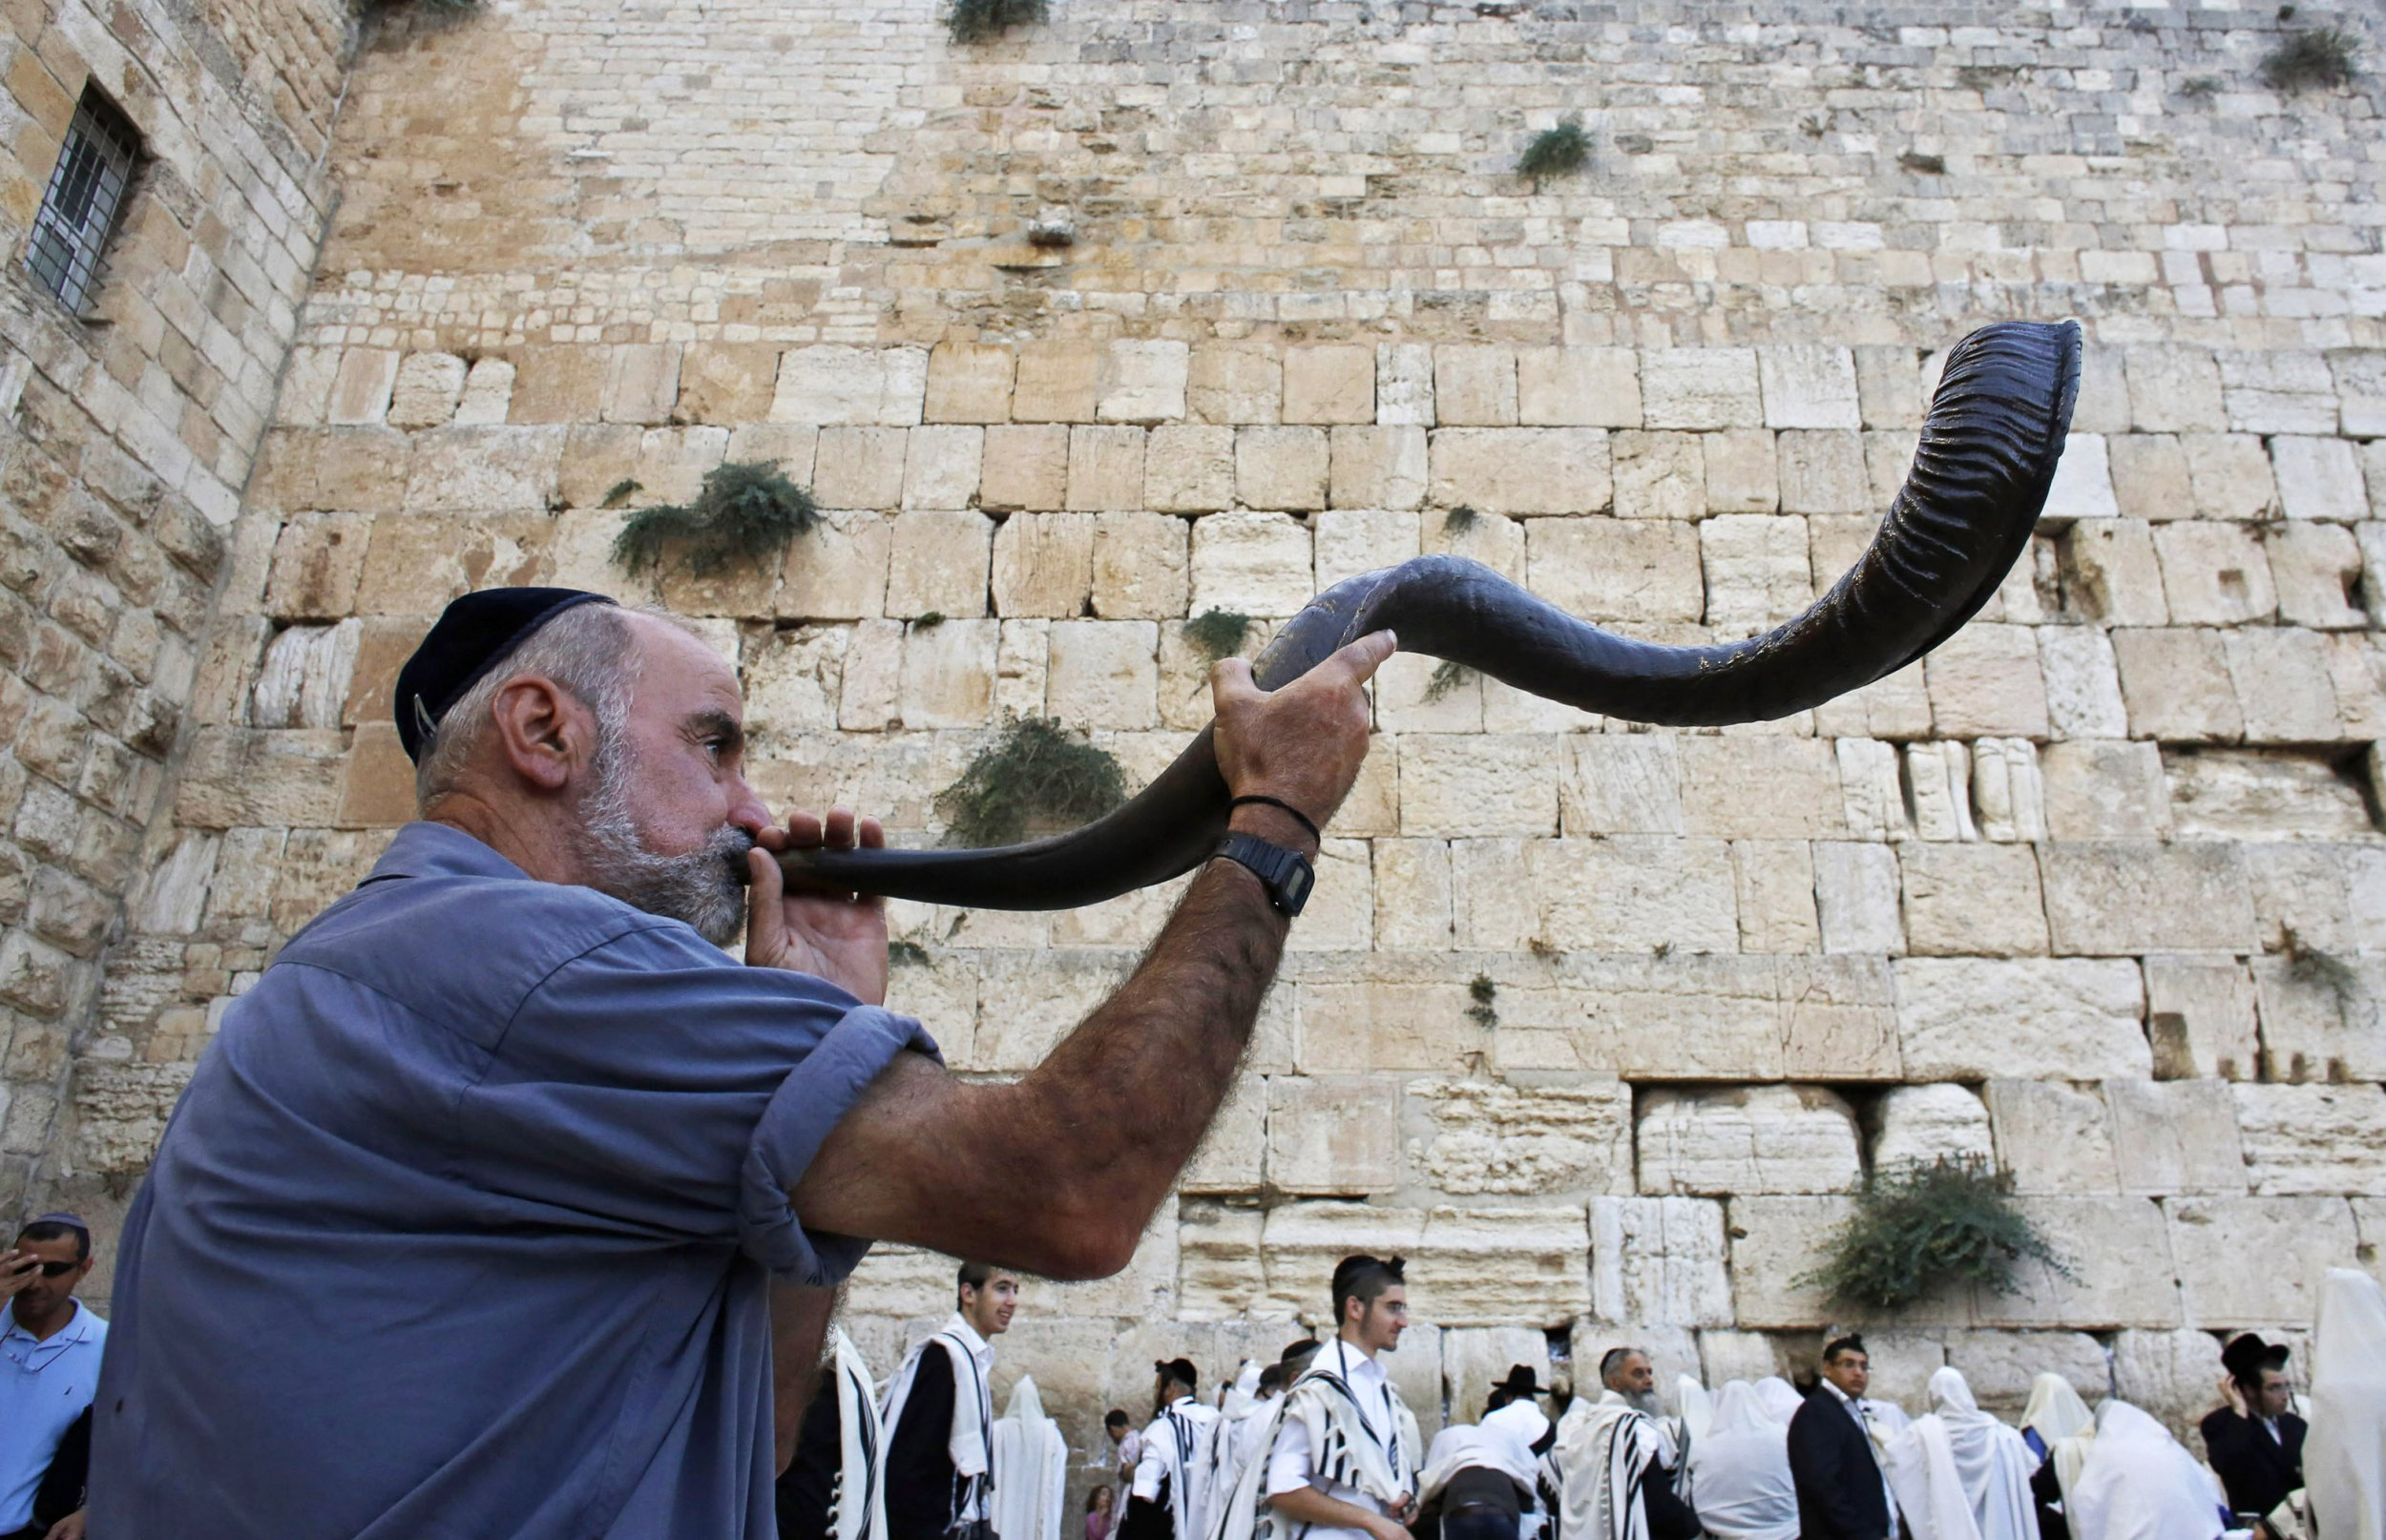 When Does Rosh Hashanah Start And End Dates And Facts About The Jewish Holiday